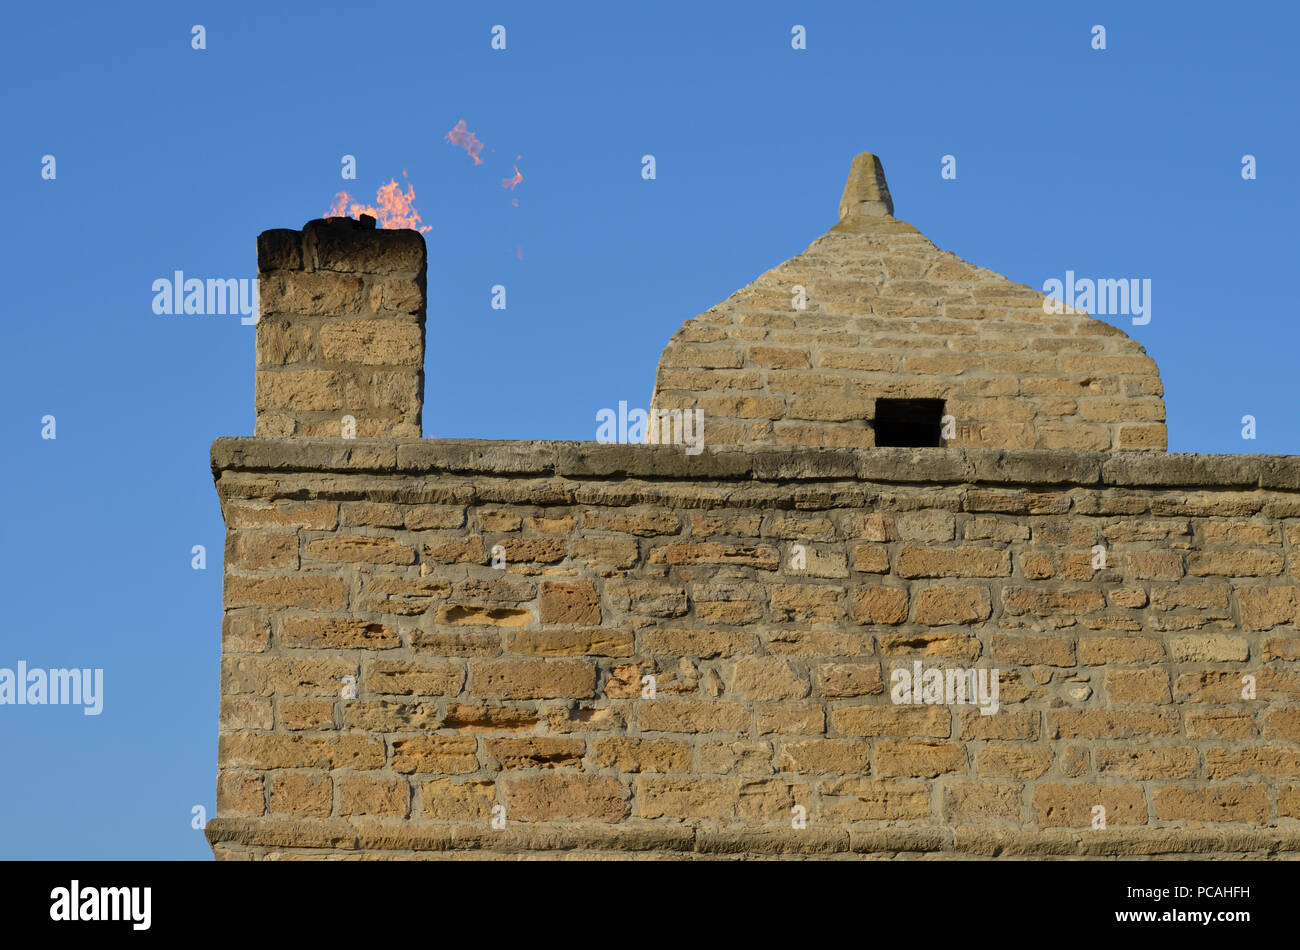 Zoroastrian Fire temple Ateshgah in Surakhani, near Baku, Azerbaijan. An example of religious syncretism inspired by natural eternal fires. - Stock Image